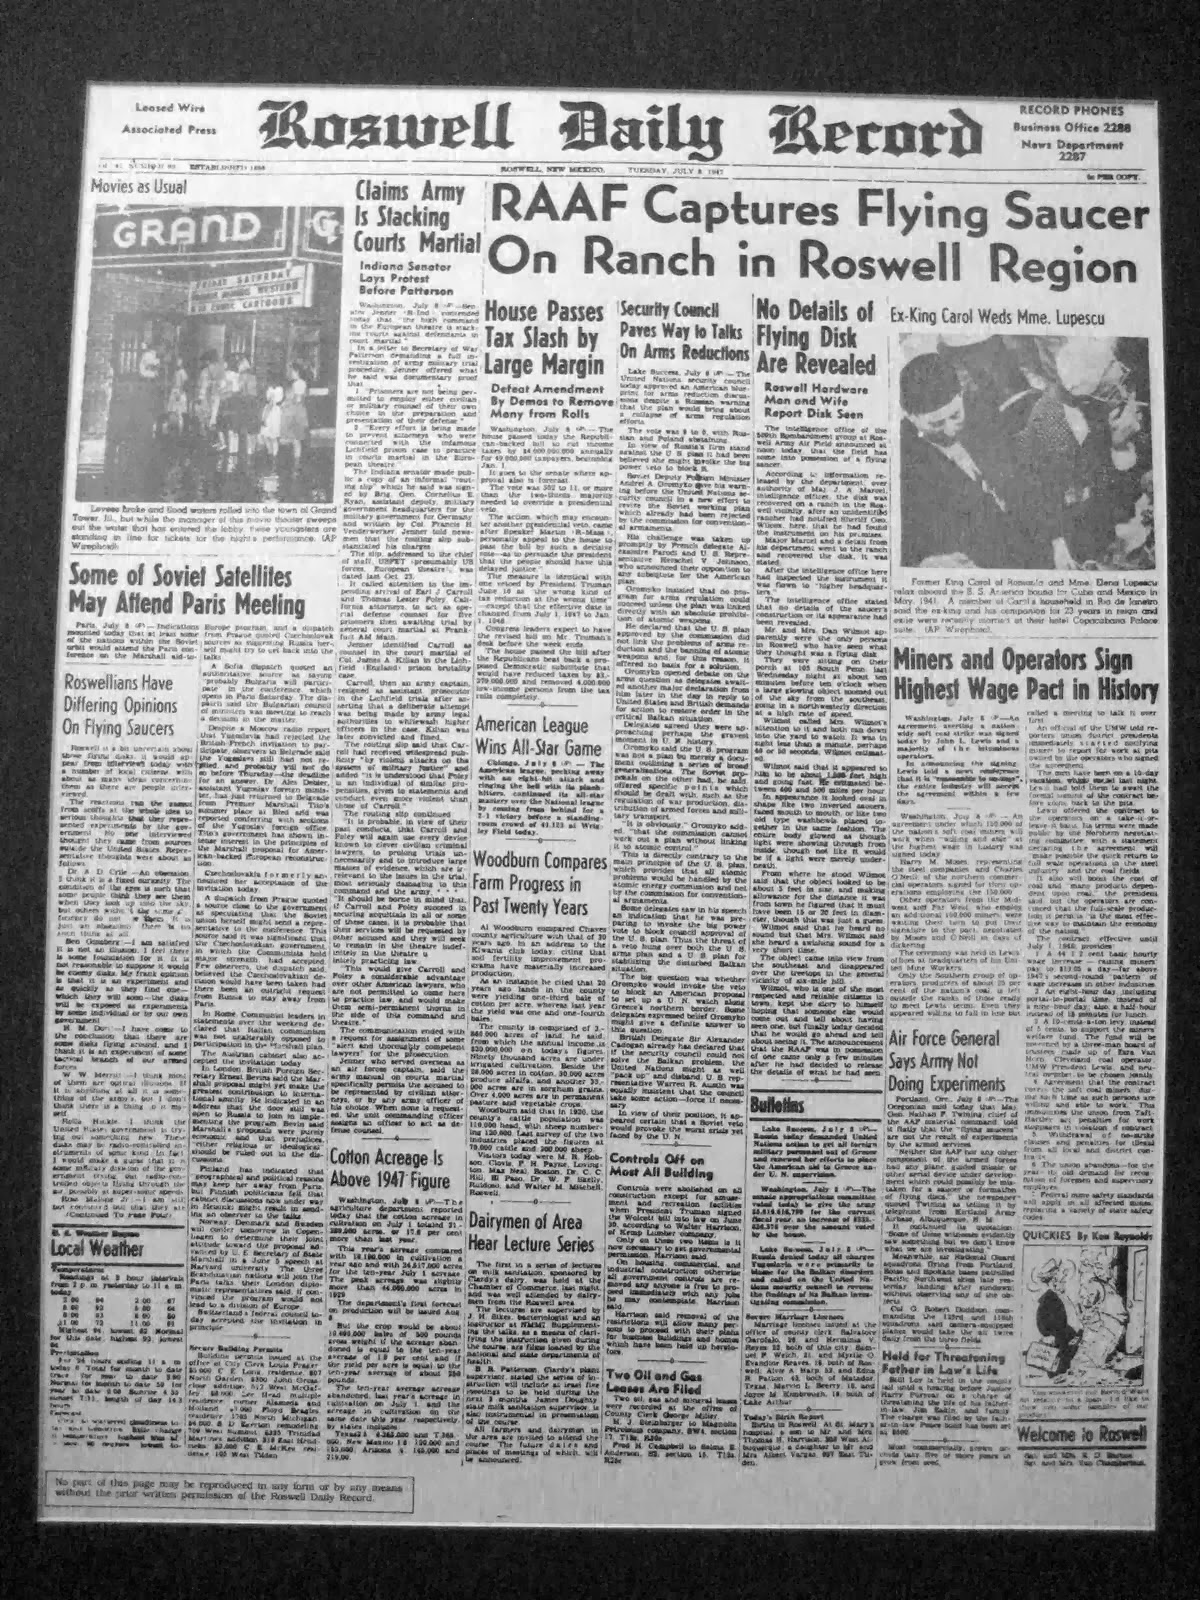 1947 roswell incident This incident gained widespread publicity, mainly owing to the media coverage and the involvement of government to deviate the attention of people away from the roswell incident on the evening of 3rd july, 1947, the first sighting happened.